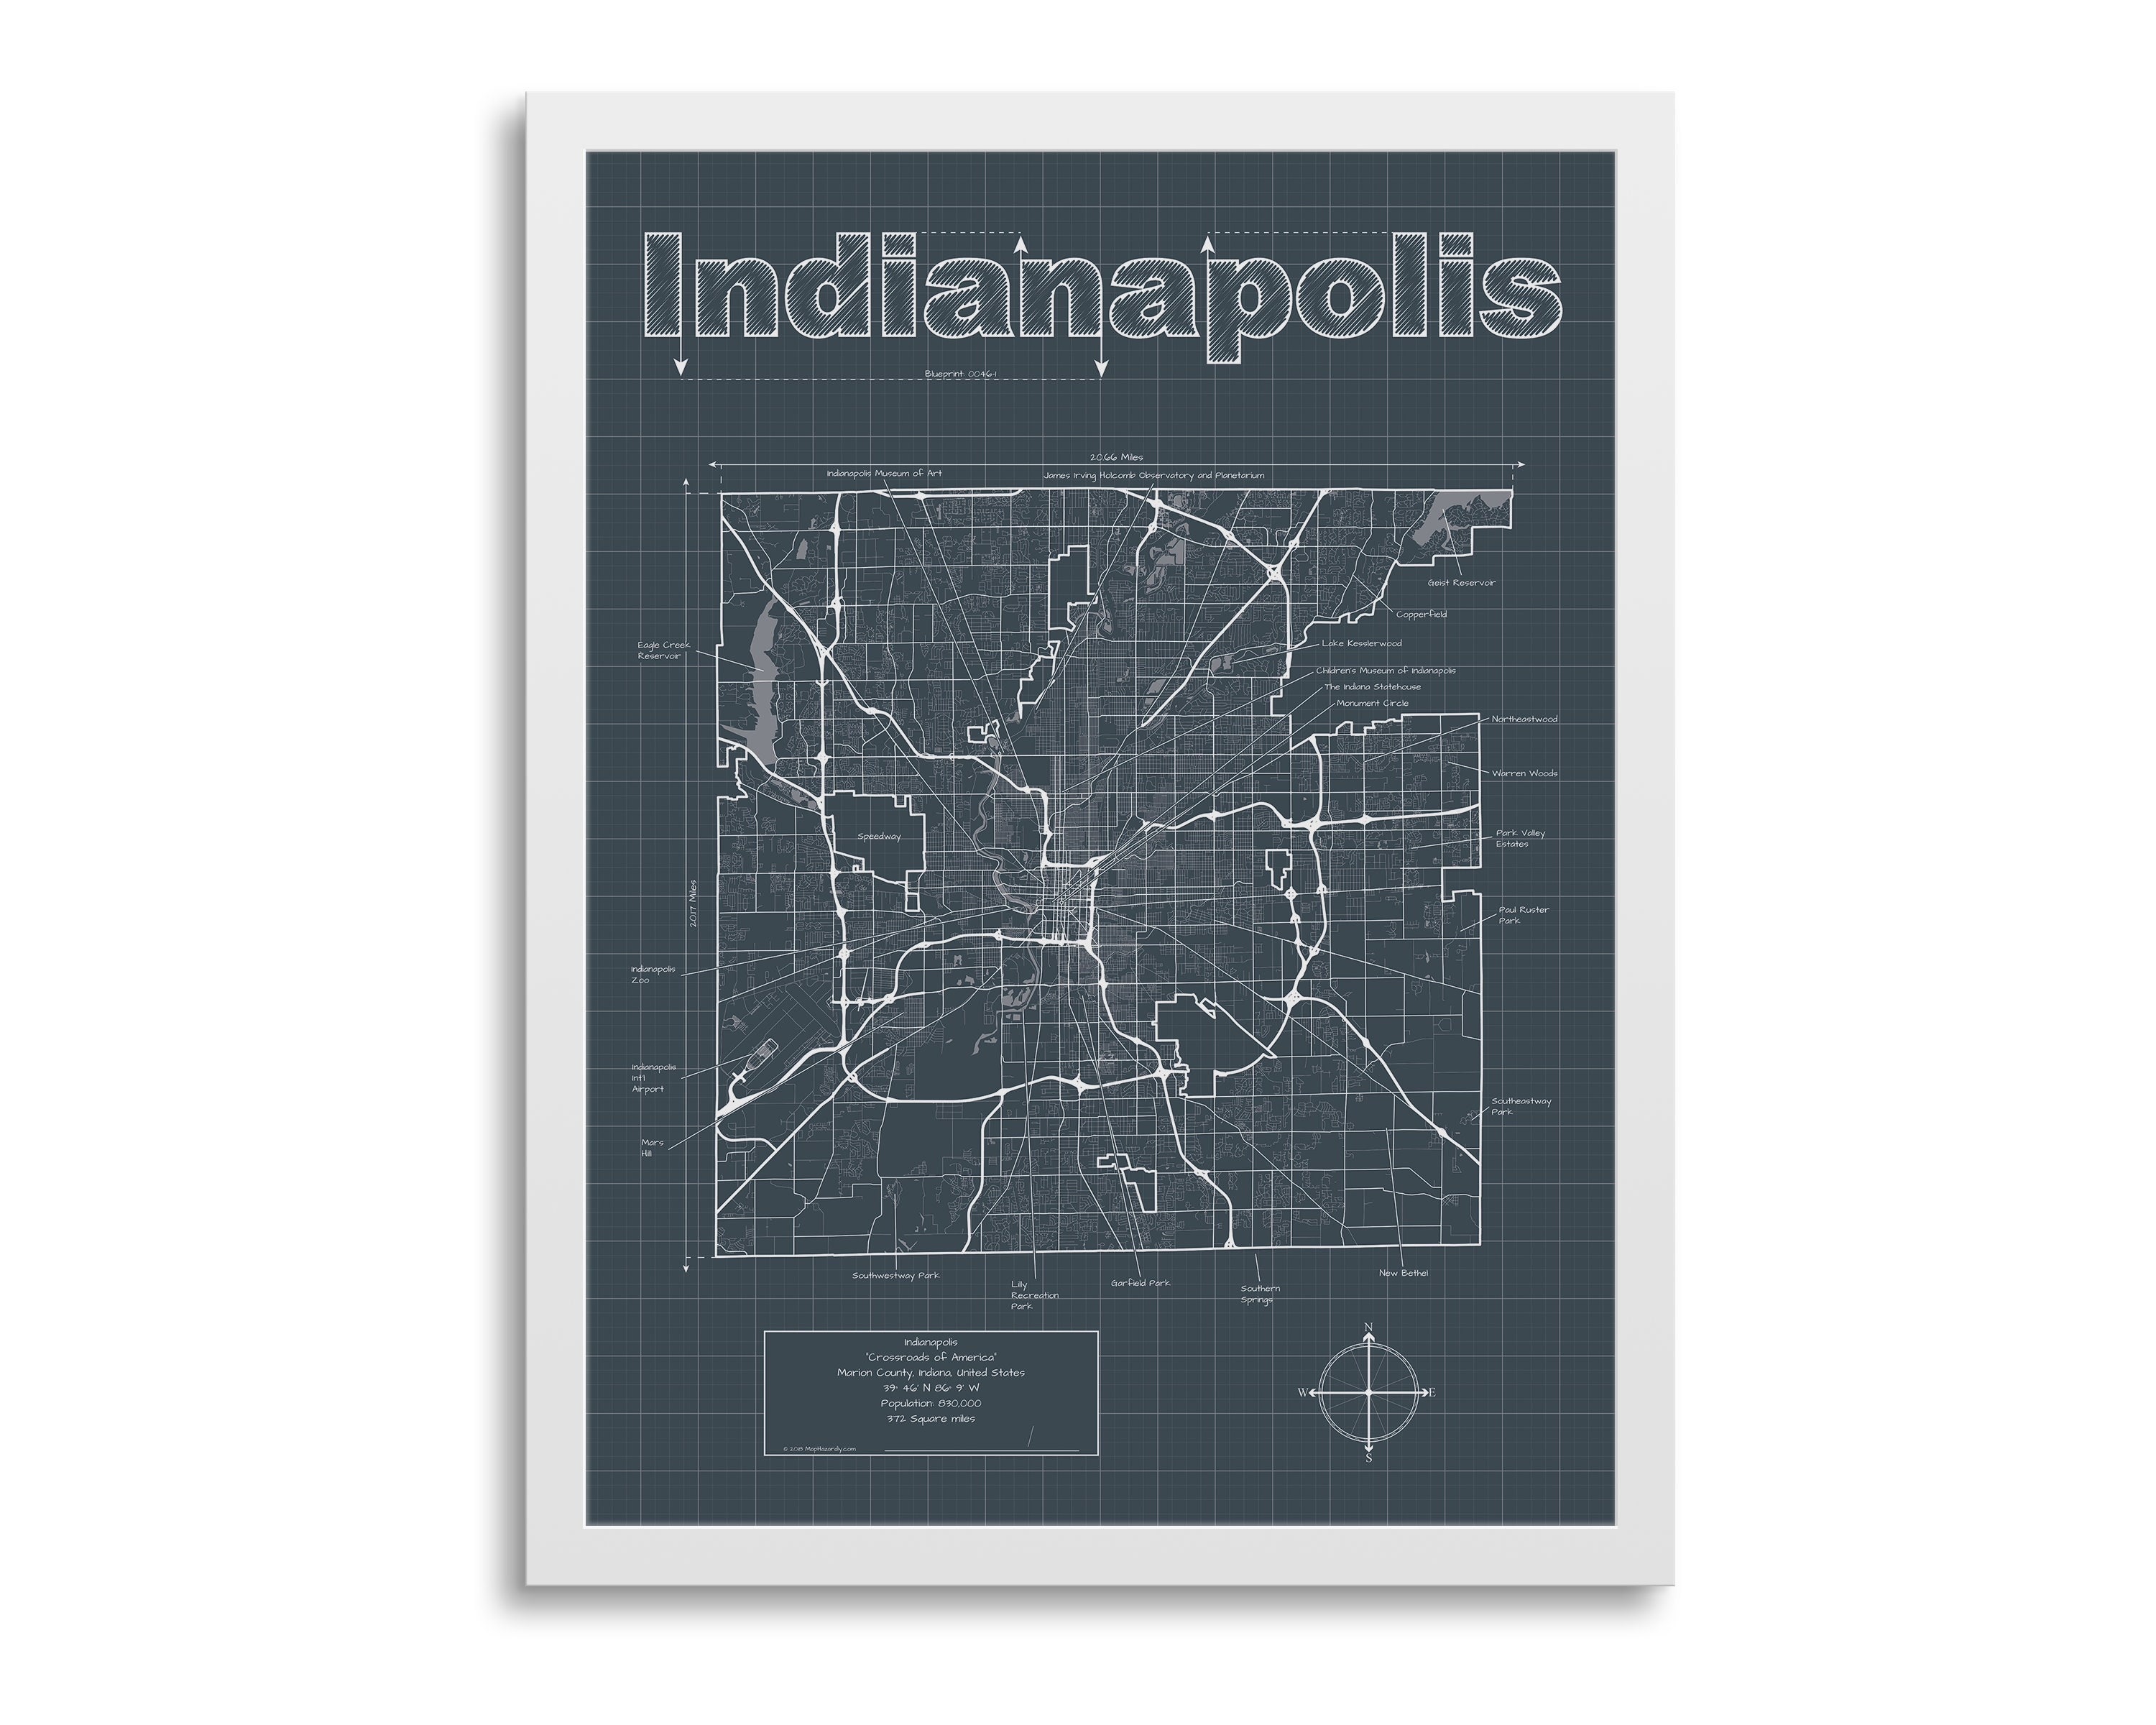 Indianapolis Map - Indianapolis Indiana Map - Indianapolis Wall Map on indiana senate map, indiana substation map, indiana's first map, indiana house map, indiana capitol map, crown hill cemetery map, boston statehouse map, indiana columbus map, indianapolis zoo map, indiana lighthouse map, indiana state map,